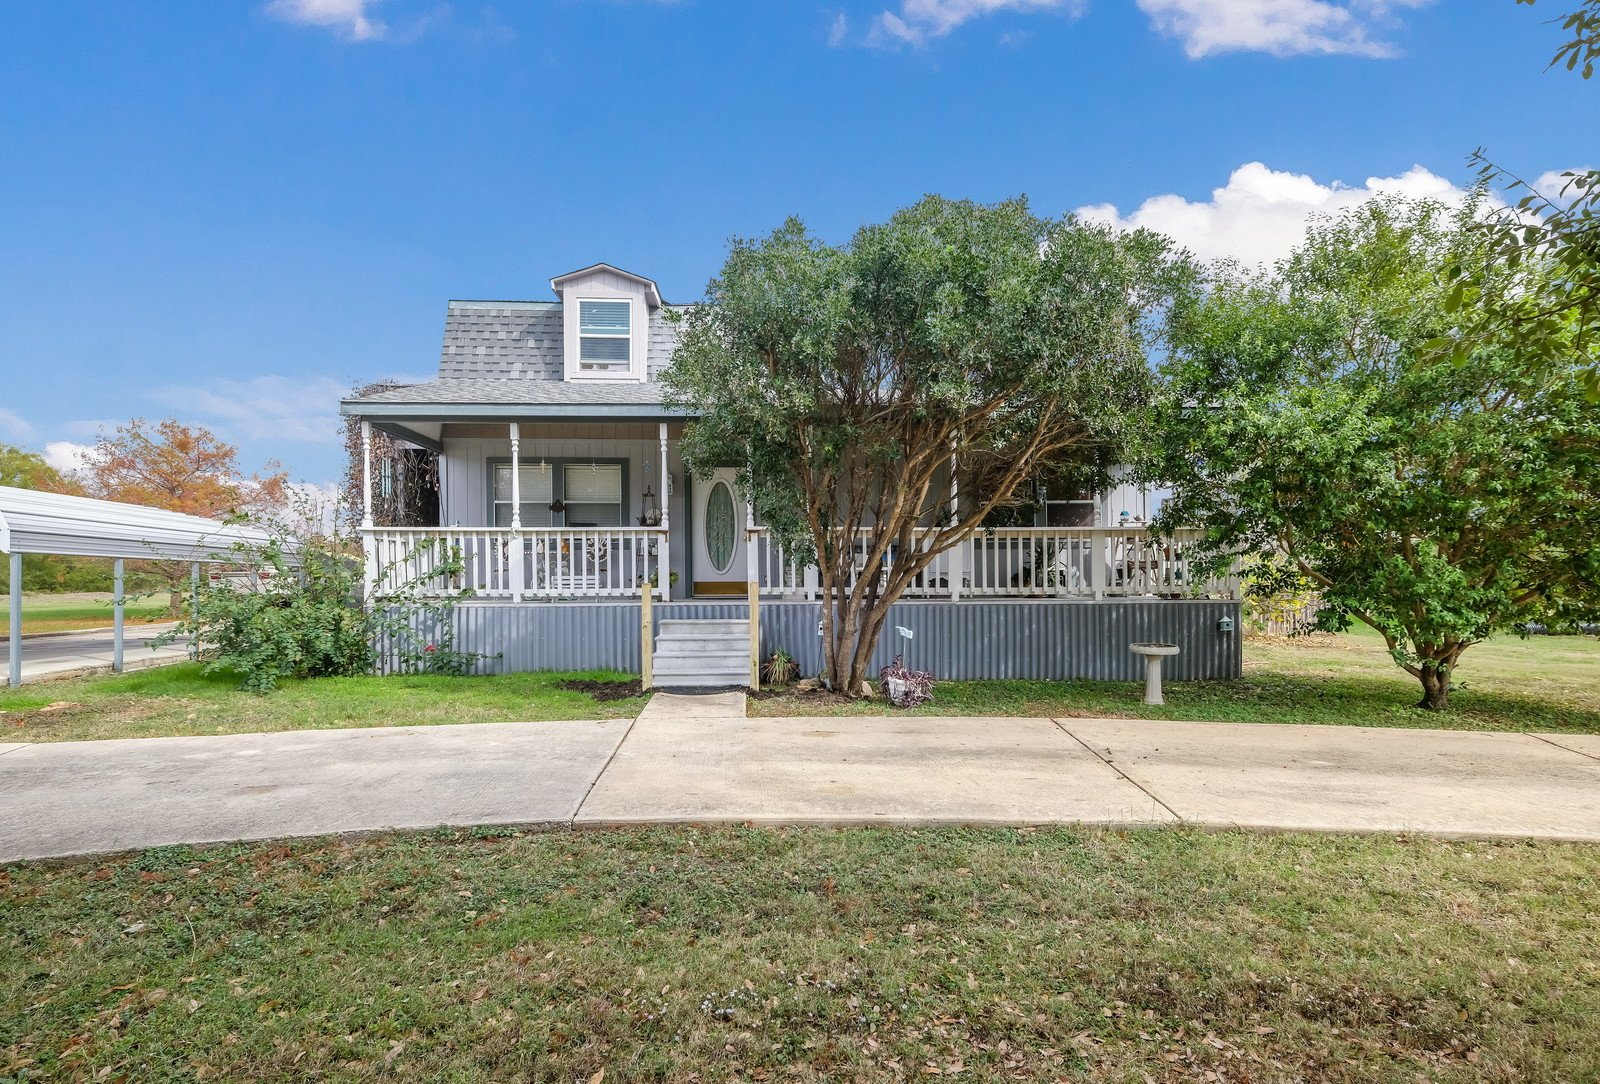 700 n Carroll St -poth tx- homes for sale